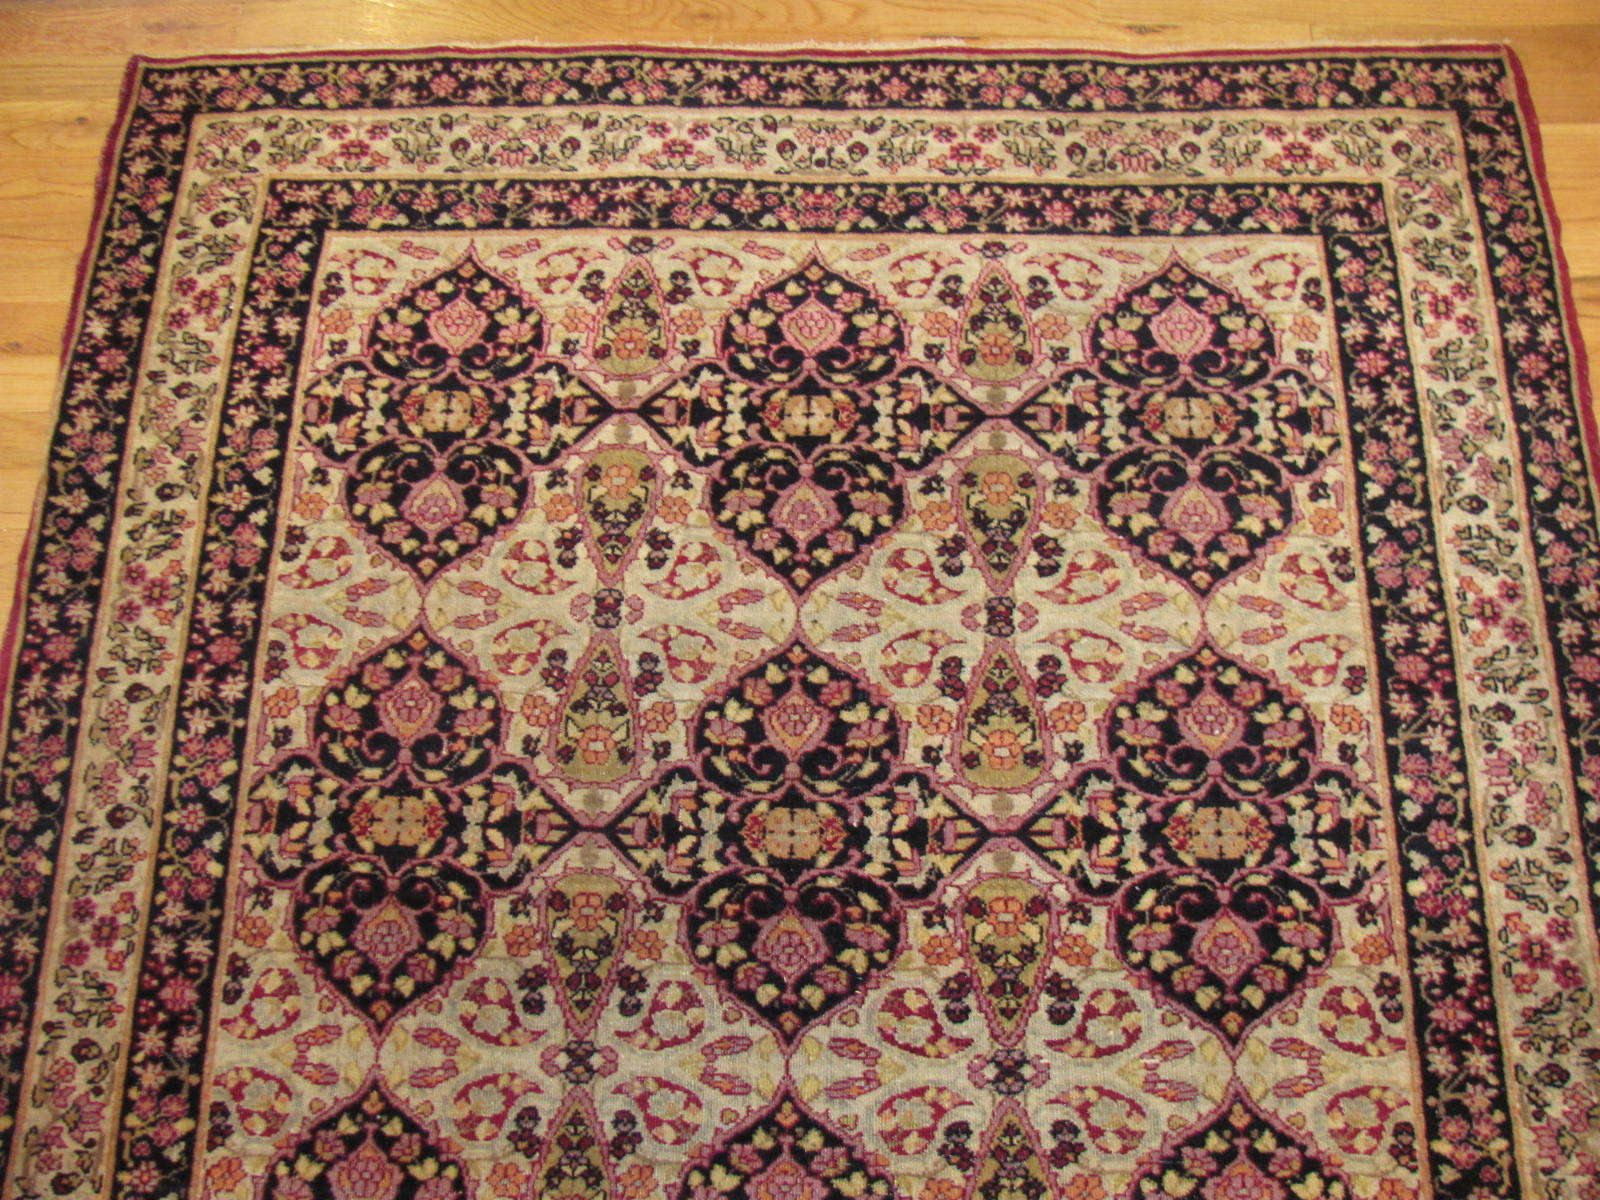 24112 Antique Persian Kirman Lavar rug 4 x 5,10-1